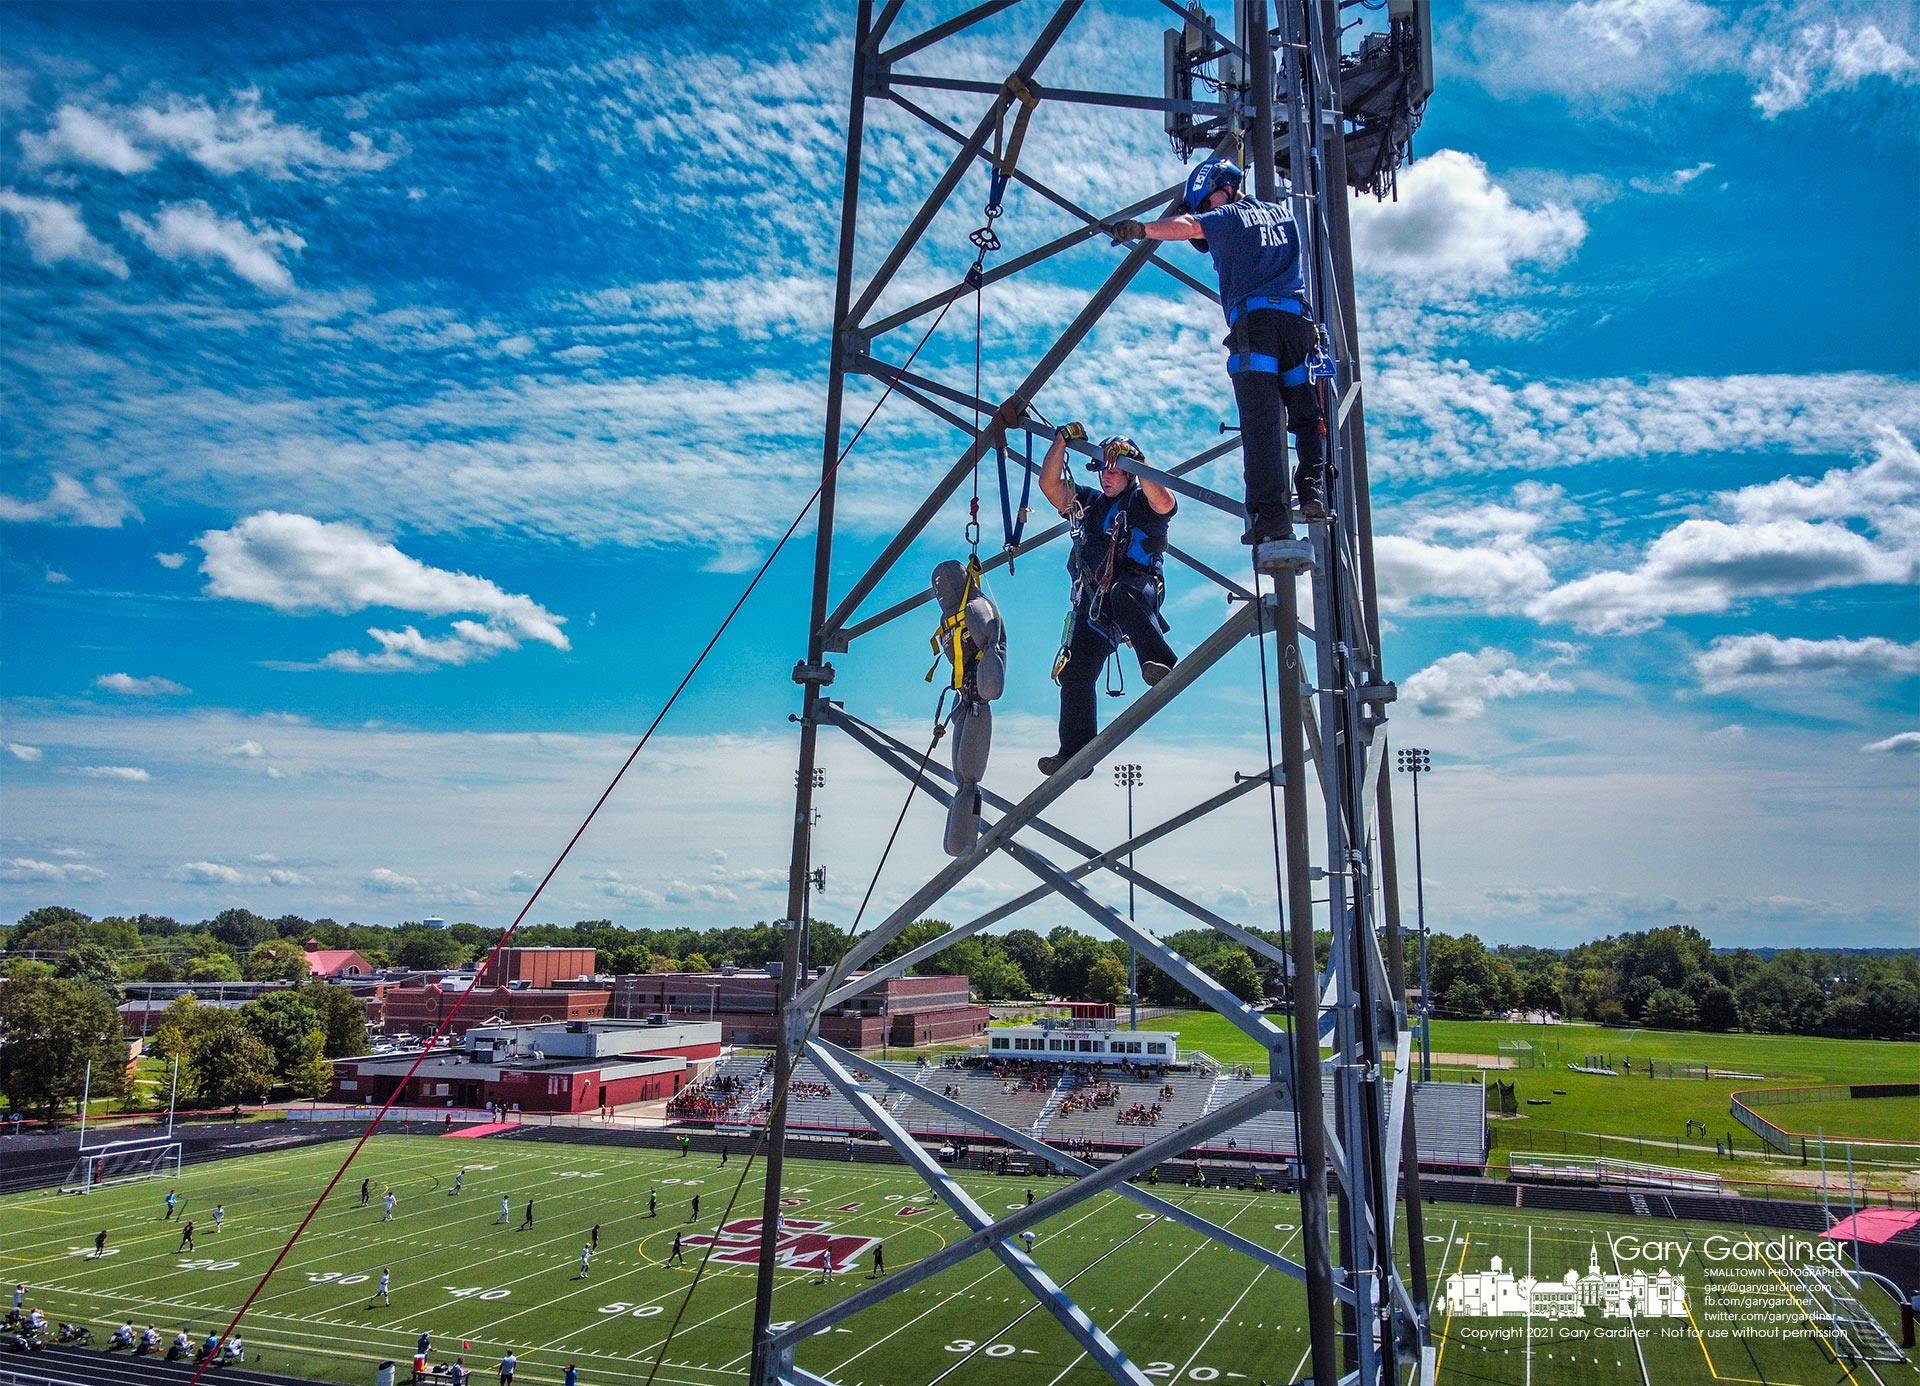 Westerville firefighters practice rescue techniques for removing an injured person from a tall antenna tower. My Final Photo for Aug. 14, 2021.